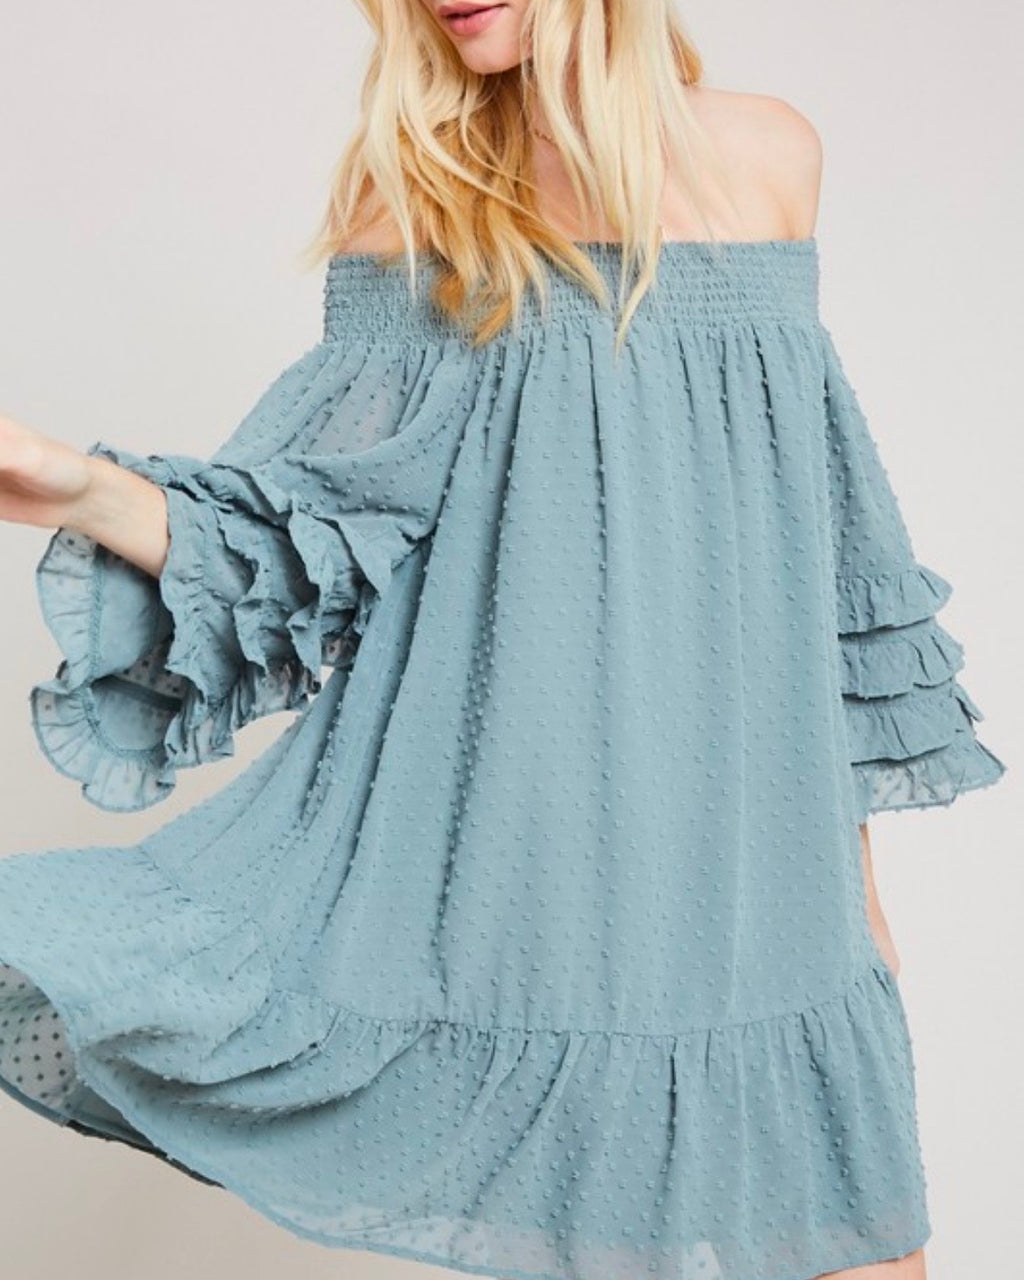 Swiss Dot Ruffle Tiered Sleeve Off-The-Shoulder Tunic Dress in Grey Mint